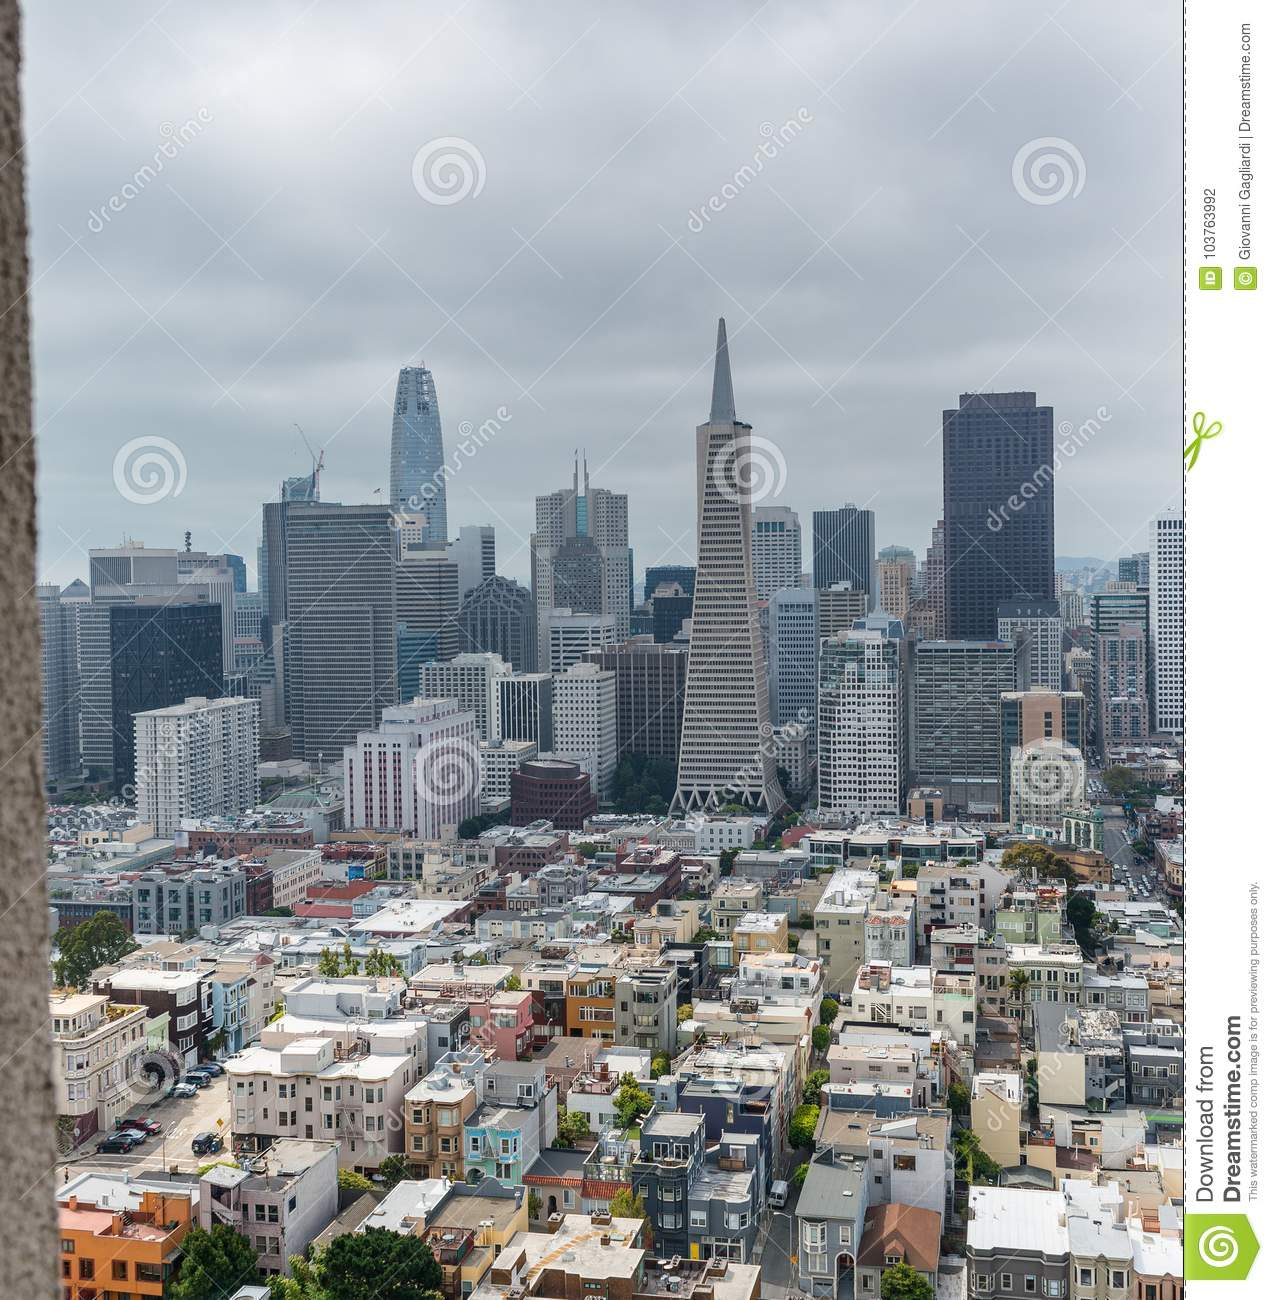 San Francisco Skyline Framed By Coit Tower Architecture Stock Photo